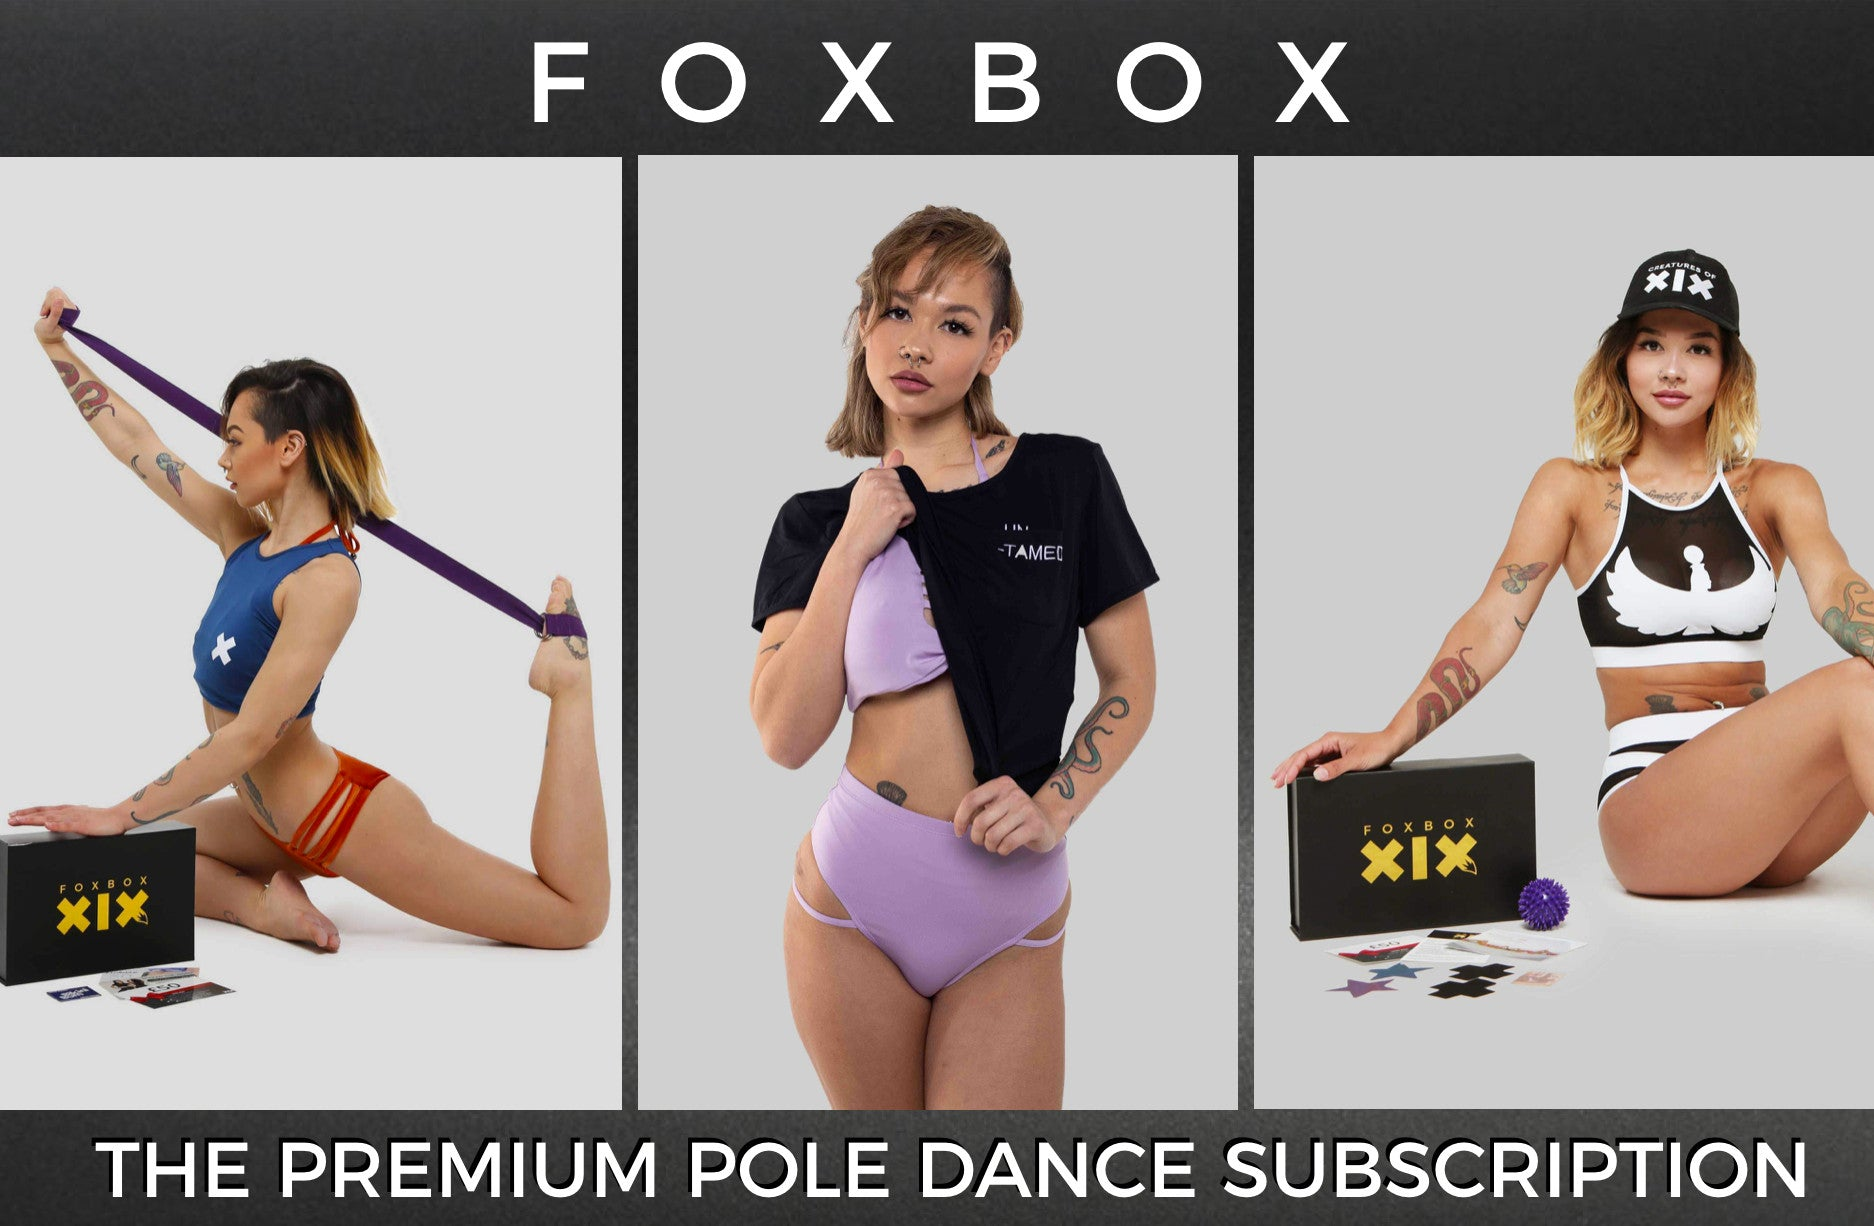 Pole dance subscription box